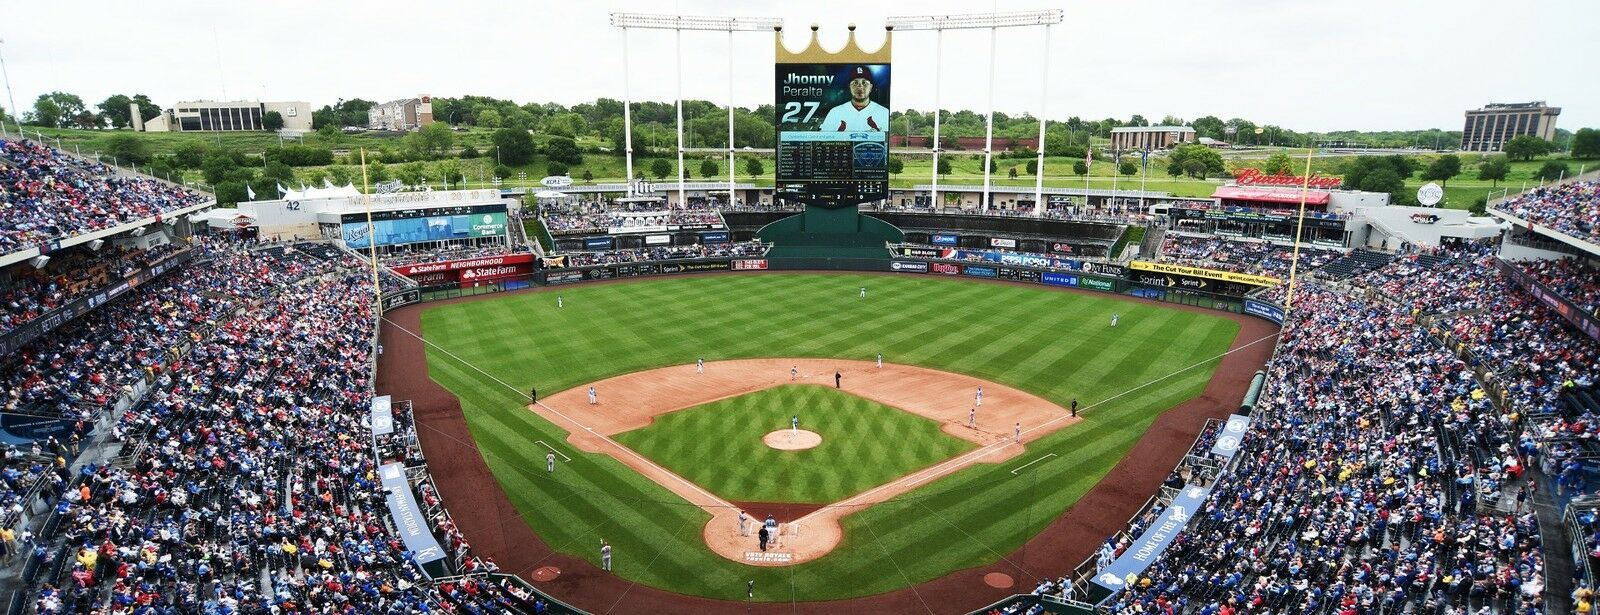 Detroit Tigers at Kansas City Royals